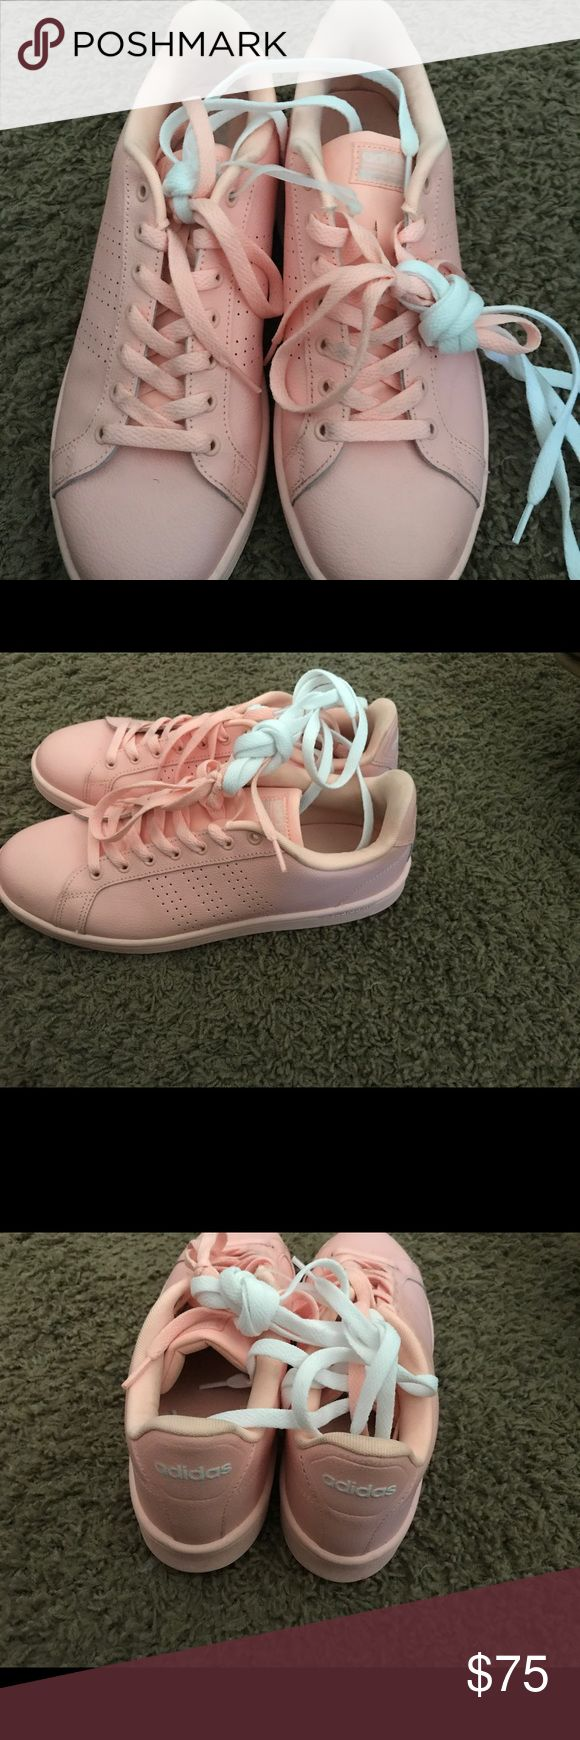 Peach adidas with matching socks In excellent condition like new adidas Shoes Athletic Shoes